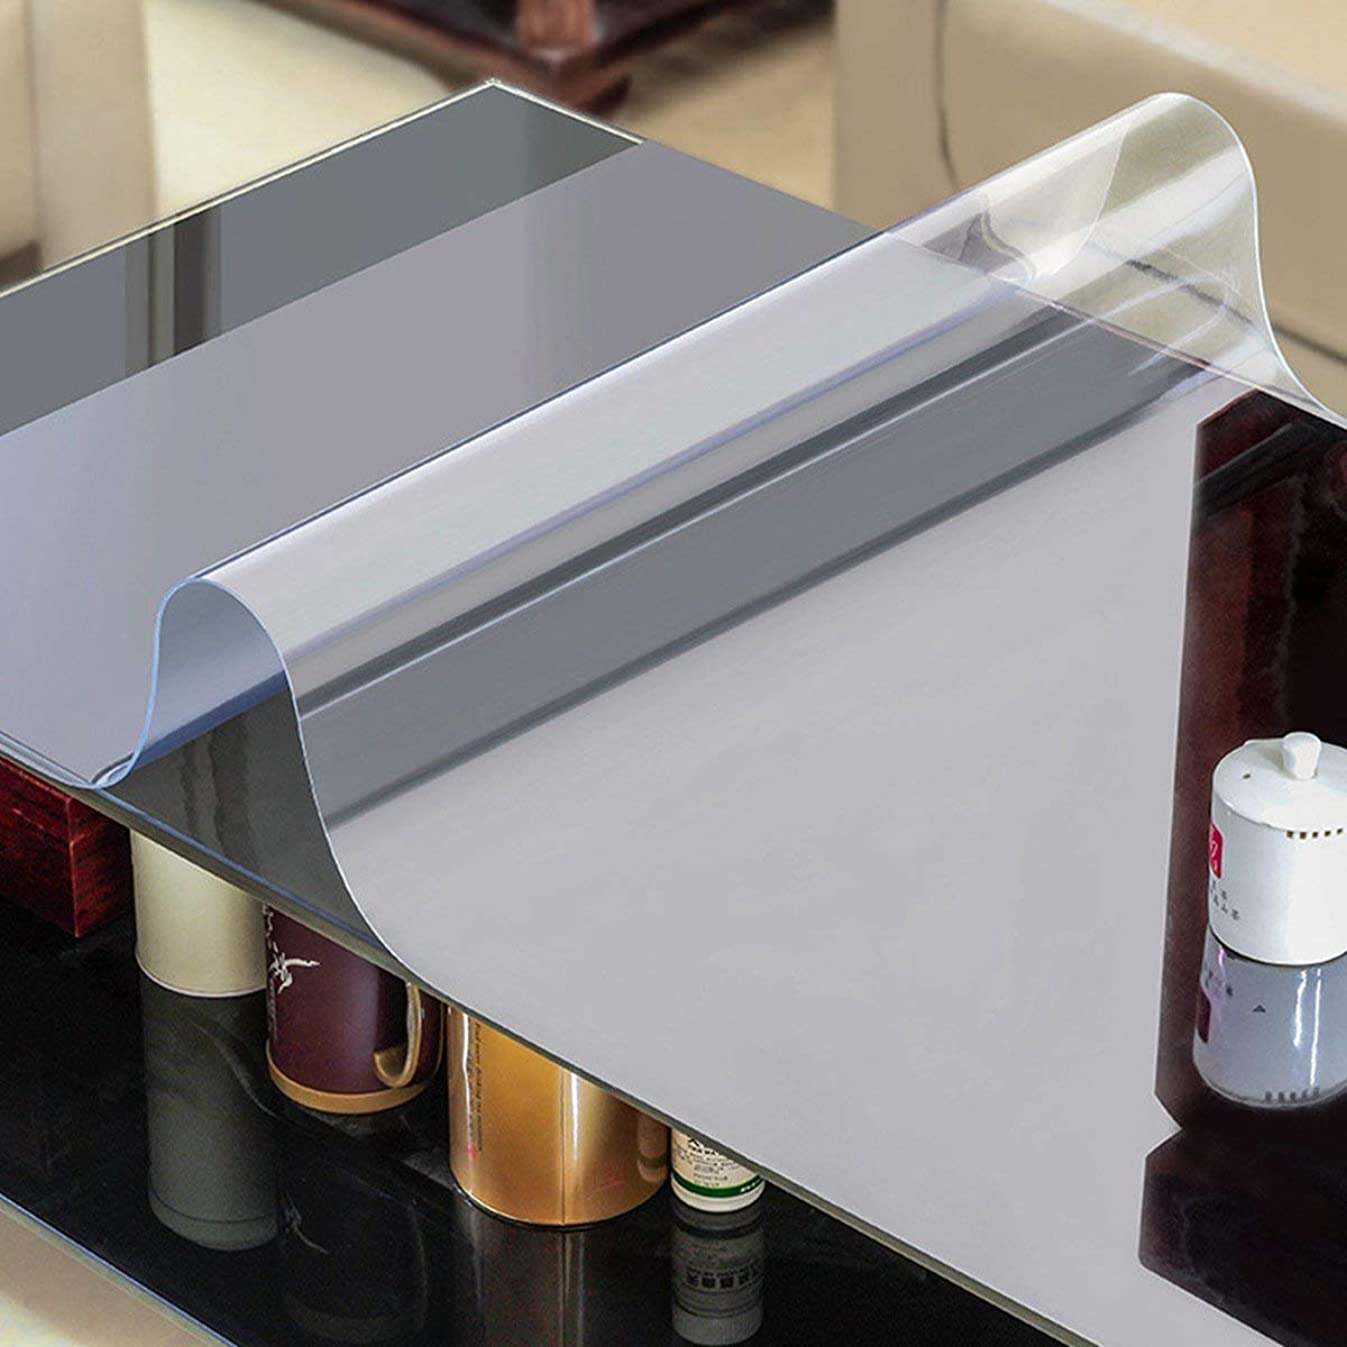 AiXiAng Custom 2.0mm Waterproof Clear PVC Table Cover Protector Rectangle 24 x 48 Inches Plastic Tablecloth for Dining Table, Desk,Lab Bench,Marble Top Table Pads Table Covers Coffe Table Protector